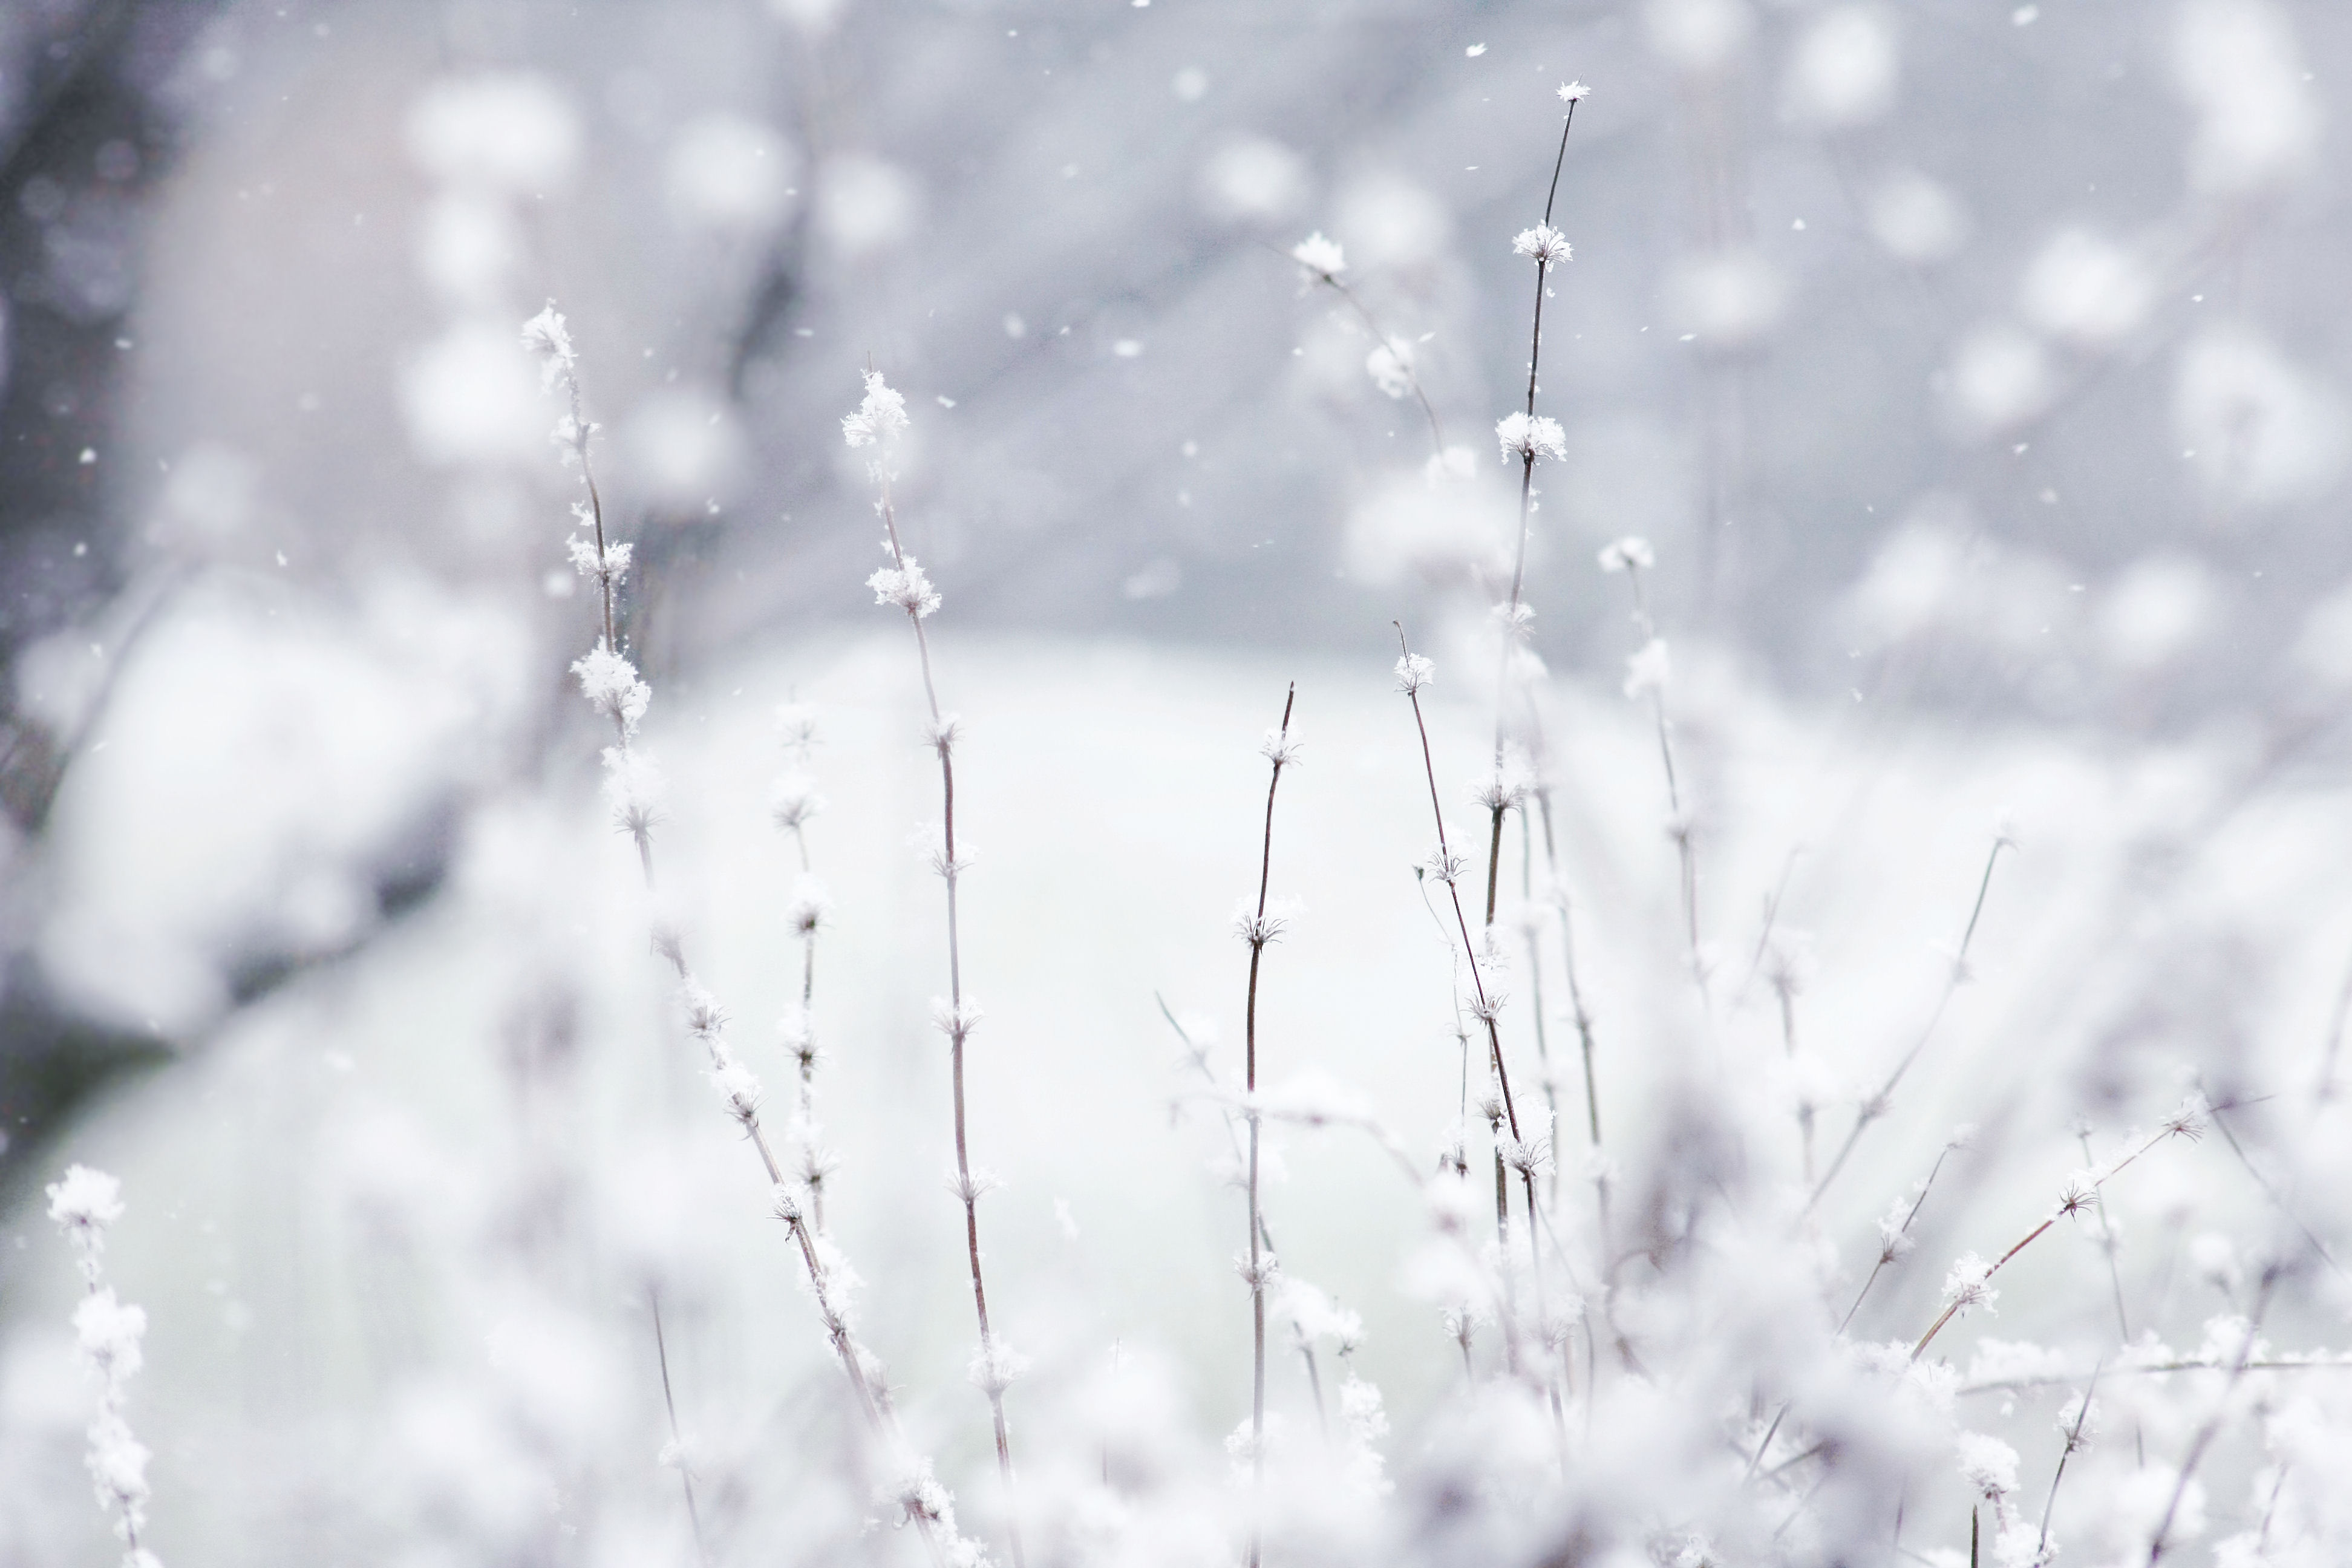 Android Wallpaper Winter Wonderland 3888x2592